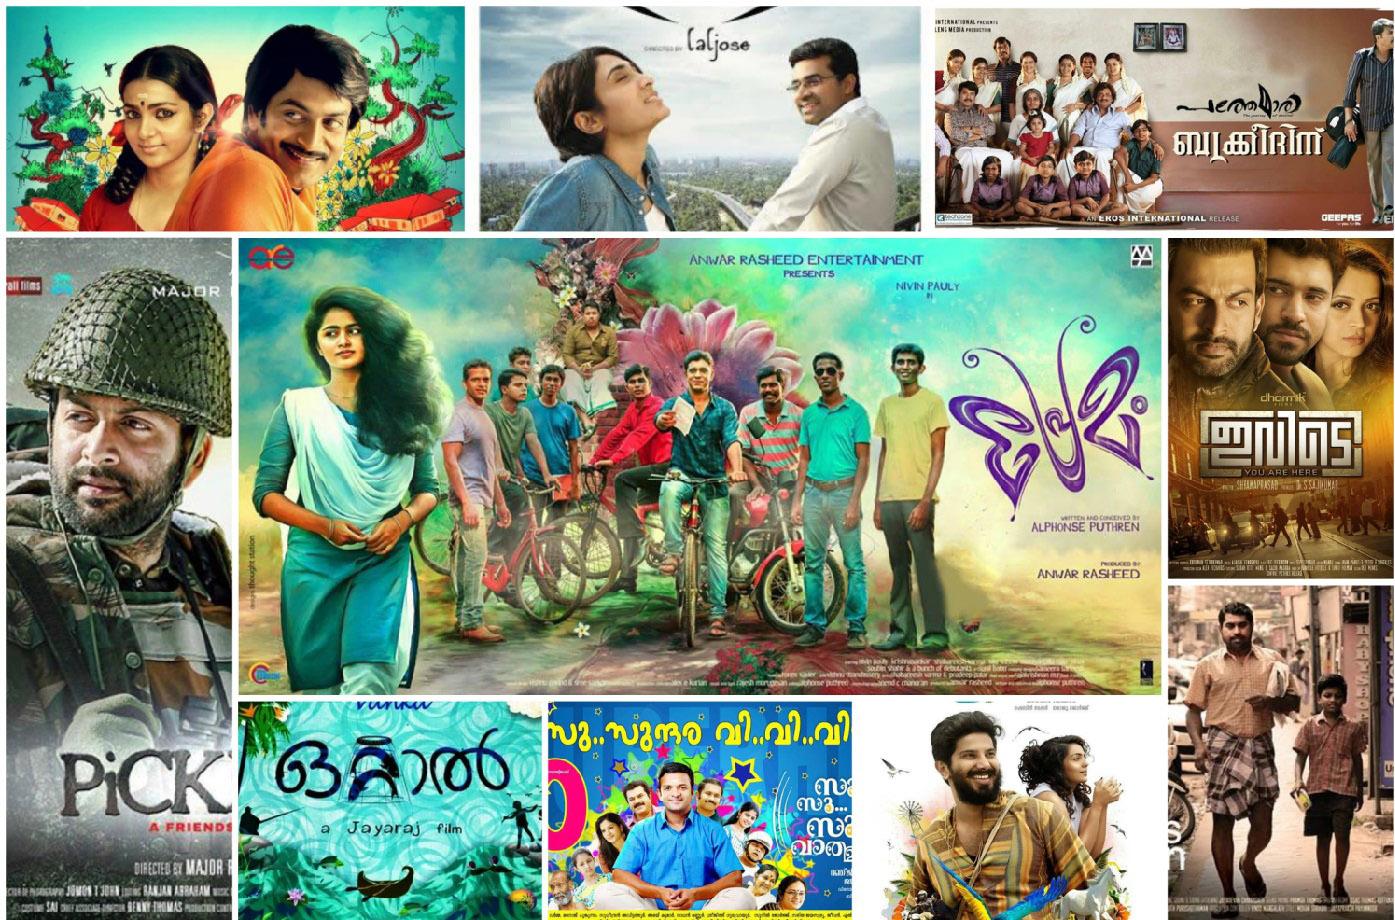 Best 100+ Sites to Download New HD Keralamax / Tamilrockers Malayalam Movies  without Paying In 2020 | Malayalam movies download sites list - LATEST  UPDATED TRICKS